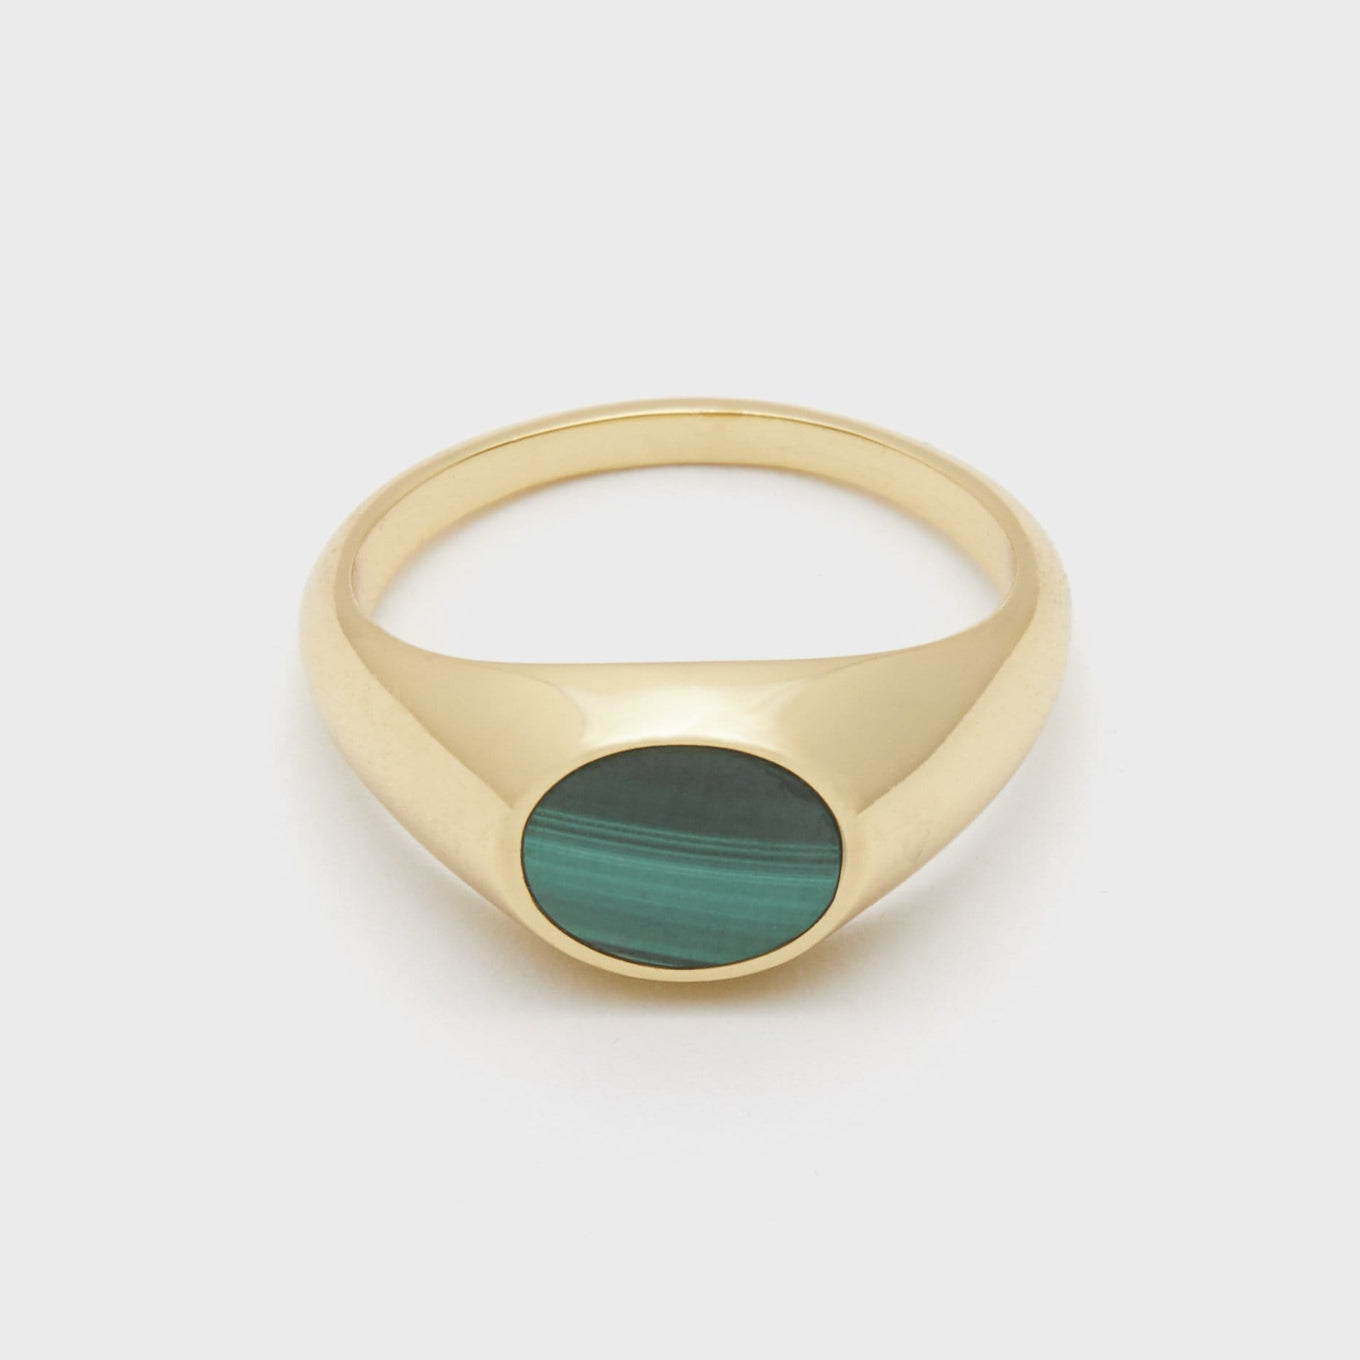 Gorjana Jewelry Malachite Signet Ring, Hayes Signet Ring